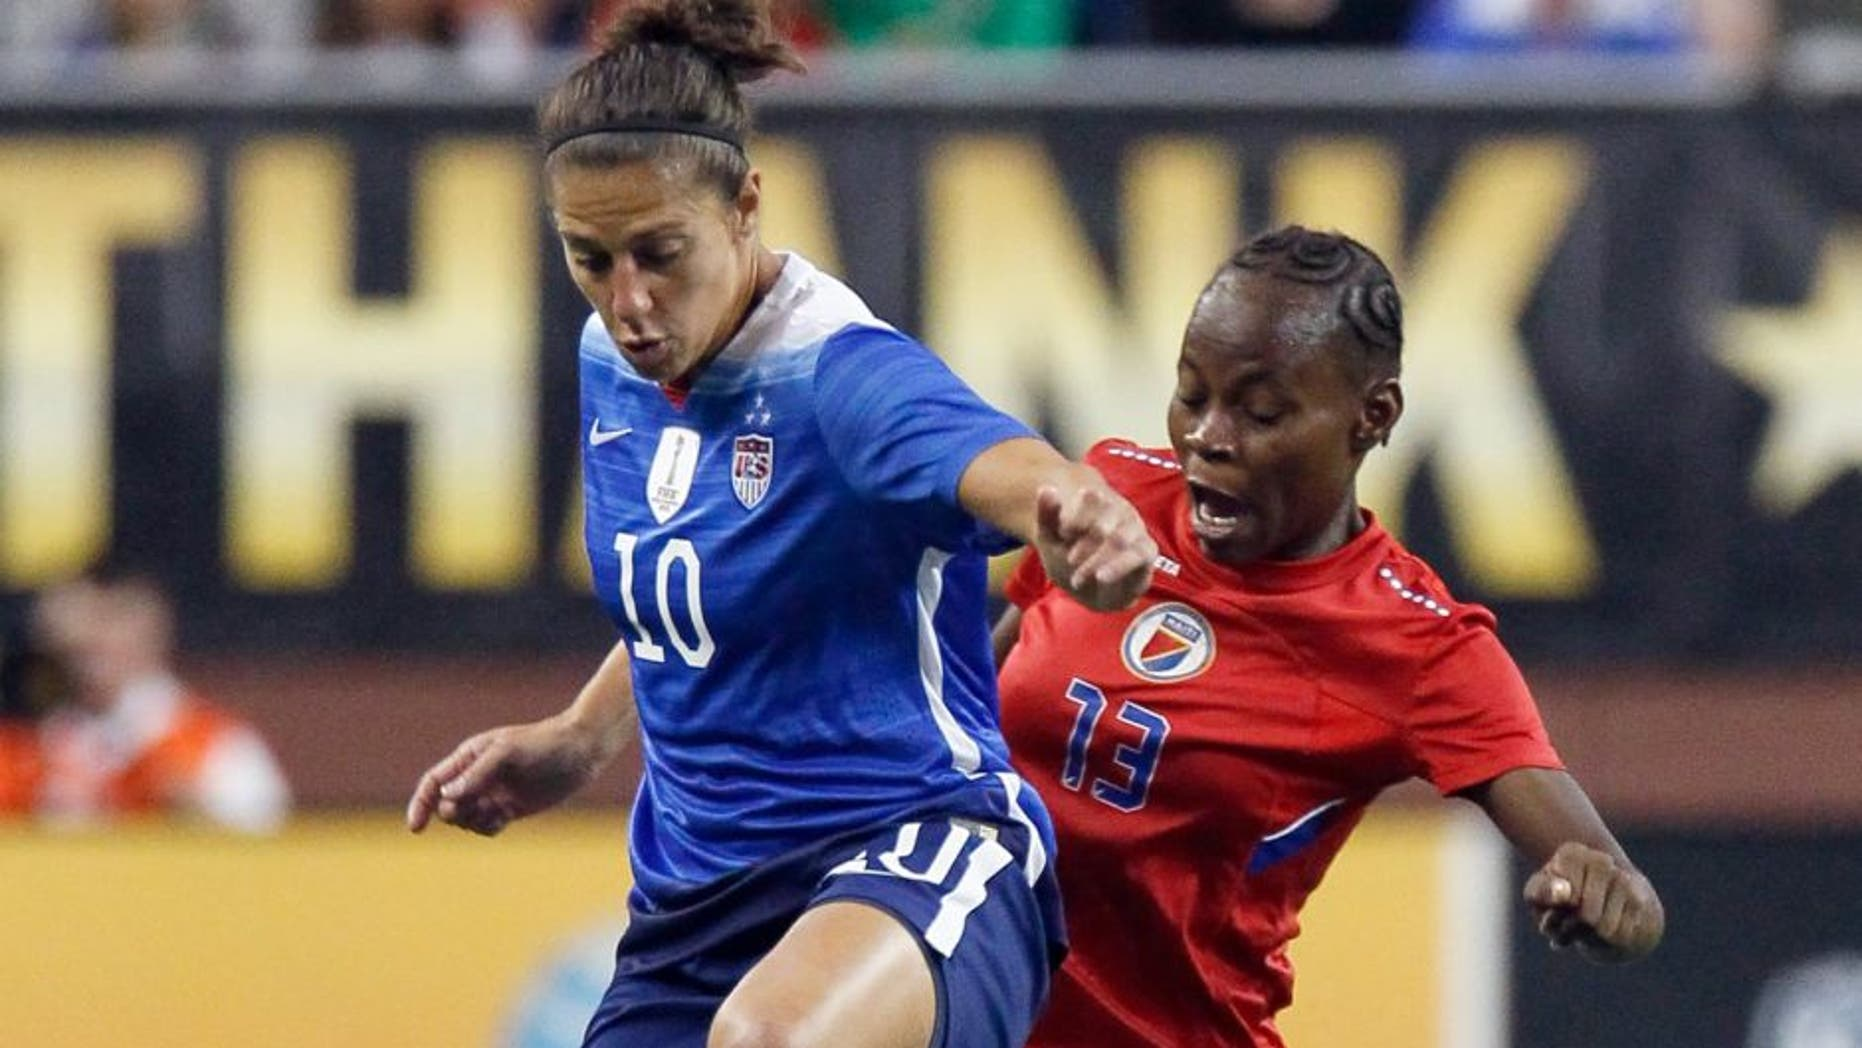 DETROIT, MI - SEPTEMBER 17: Carli Lloyd #10 of the United States tries to keep the ball away from Zila Lafleur #13 of Haiti during the first half of the U.S. Women's 2015 World Cup victory tour match at Ford Field on September 17, 2015, in Detroit, Michigan. (Photo by Duane Burleson/Getty Images)